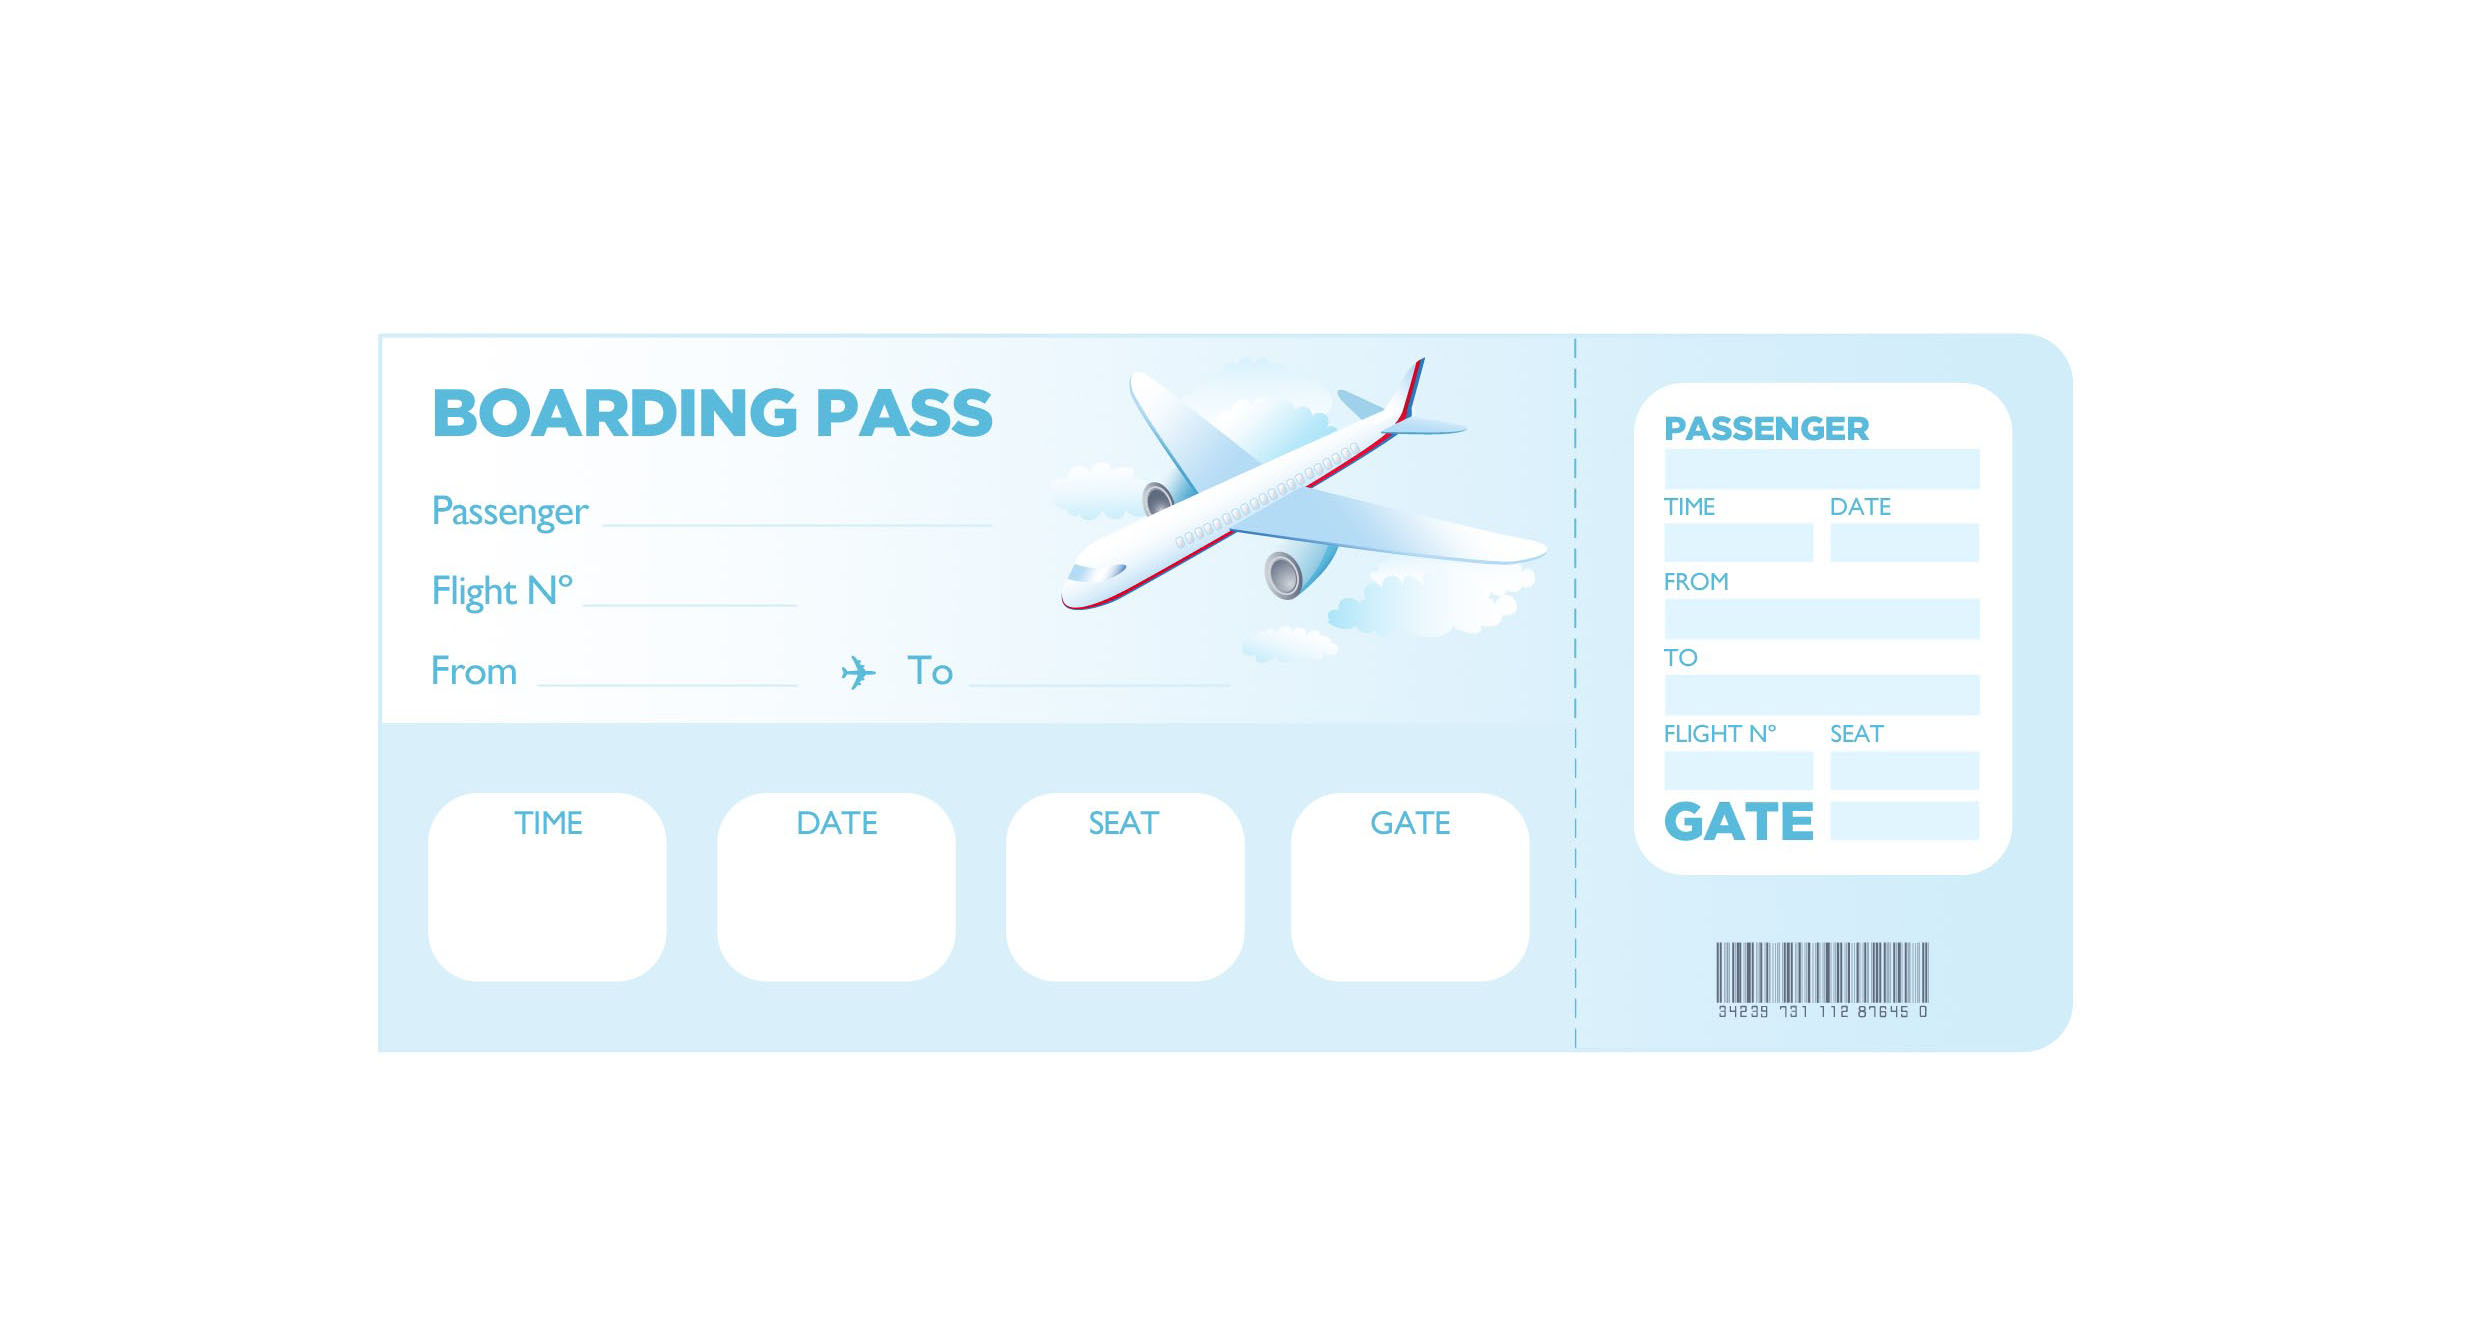 templates for the passport and boarding pass over at Paper Zip that h2TqiXik